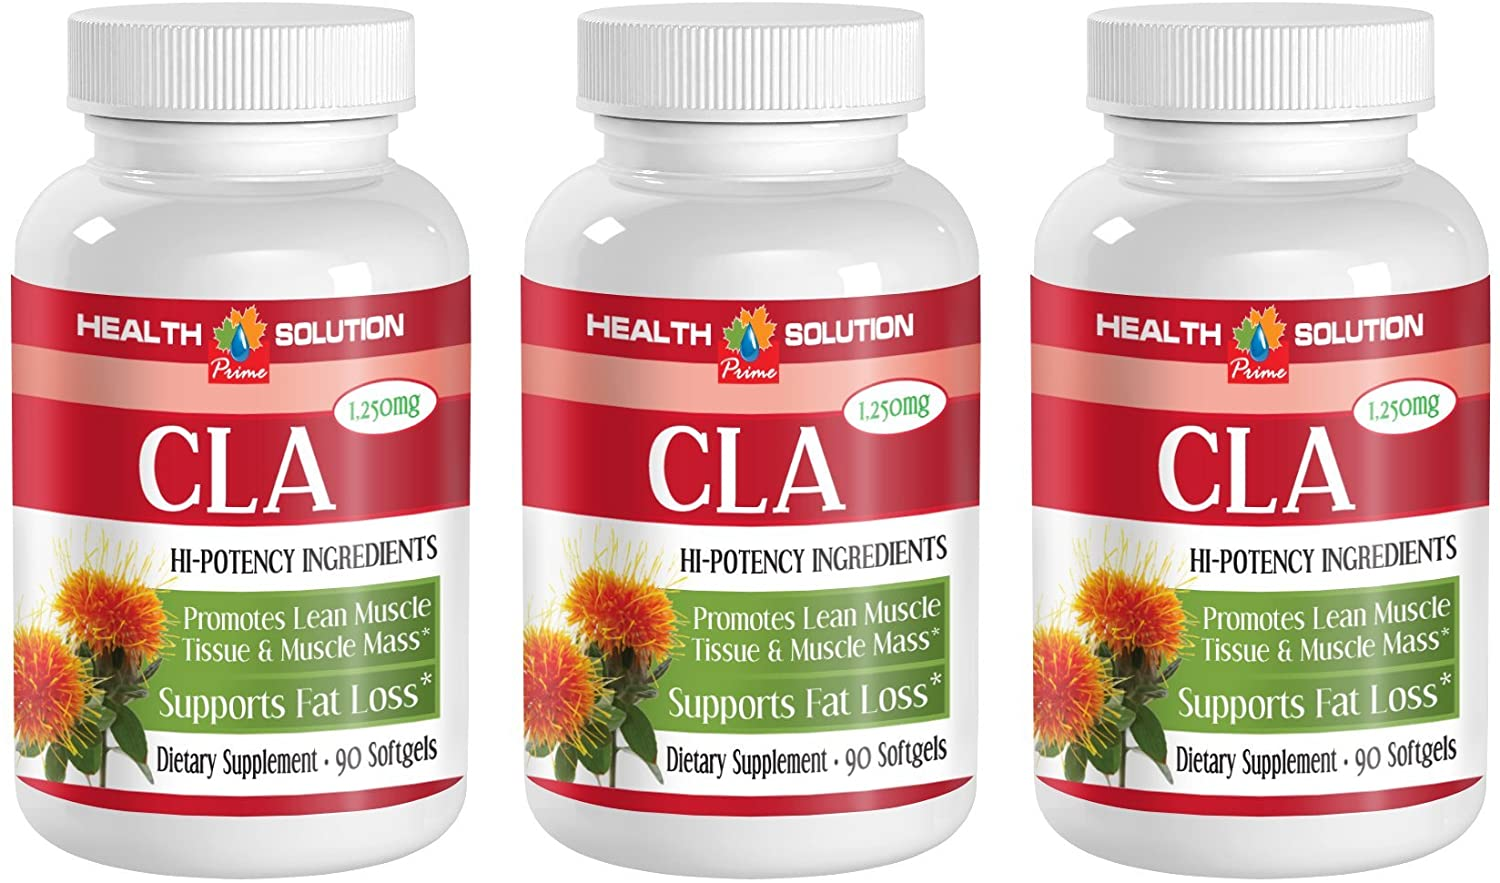 Safflower Oil Capsules - CLA 1250mg - Accelerate Weight Loss (3 Bottles)